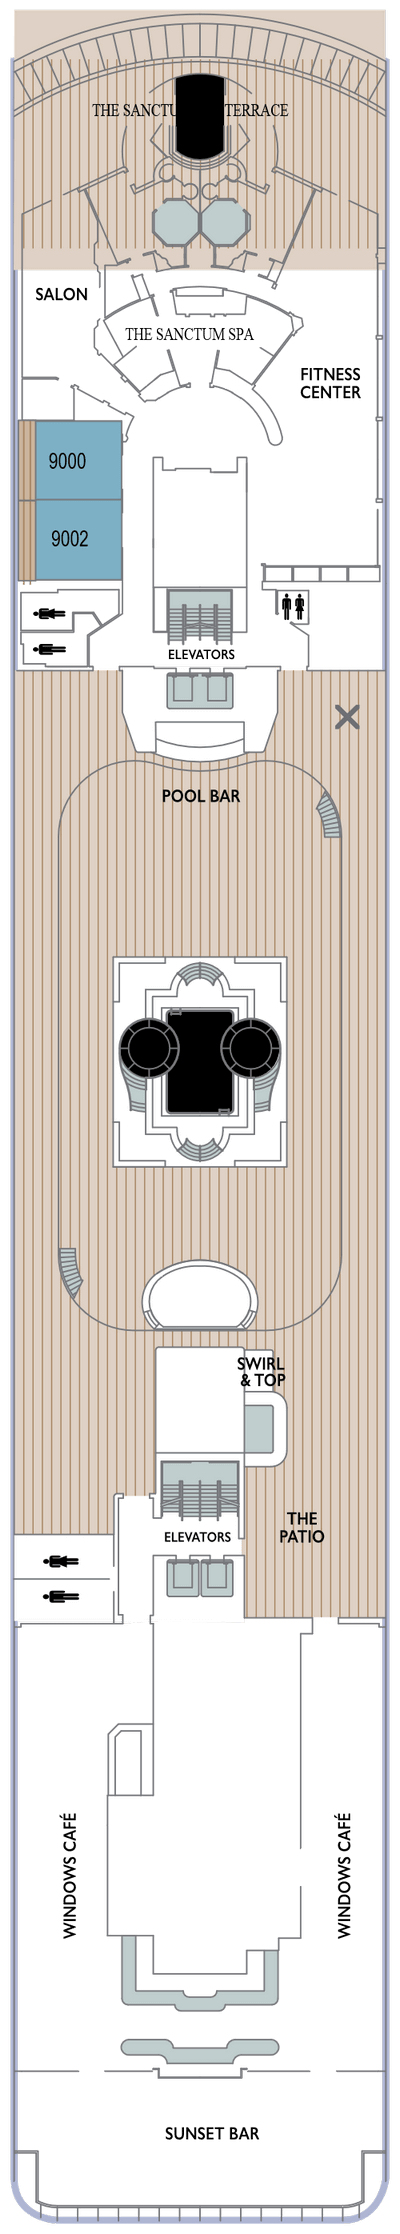 Azamara Journey Deck 9 layout